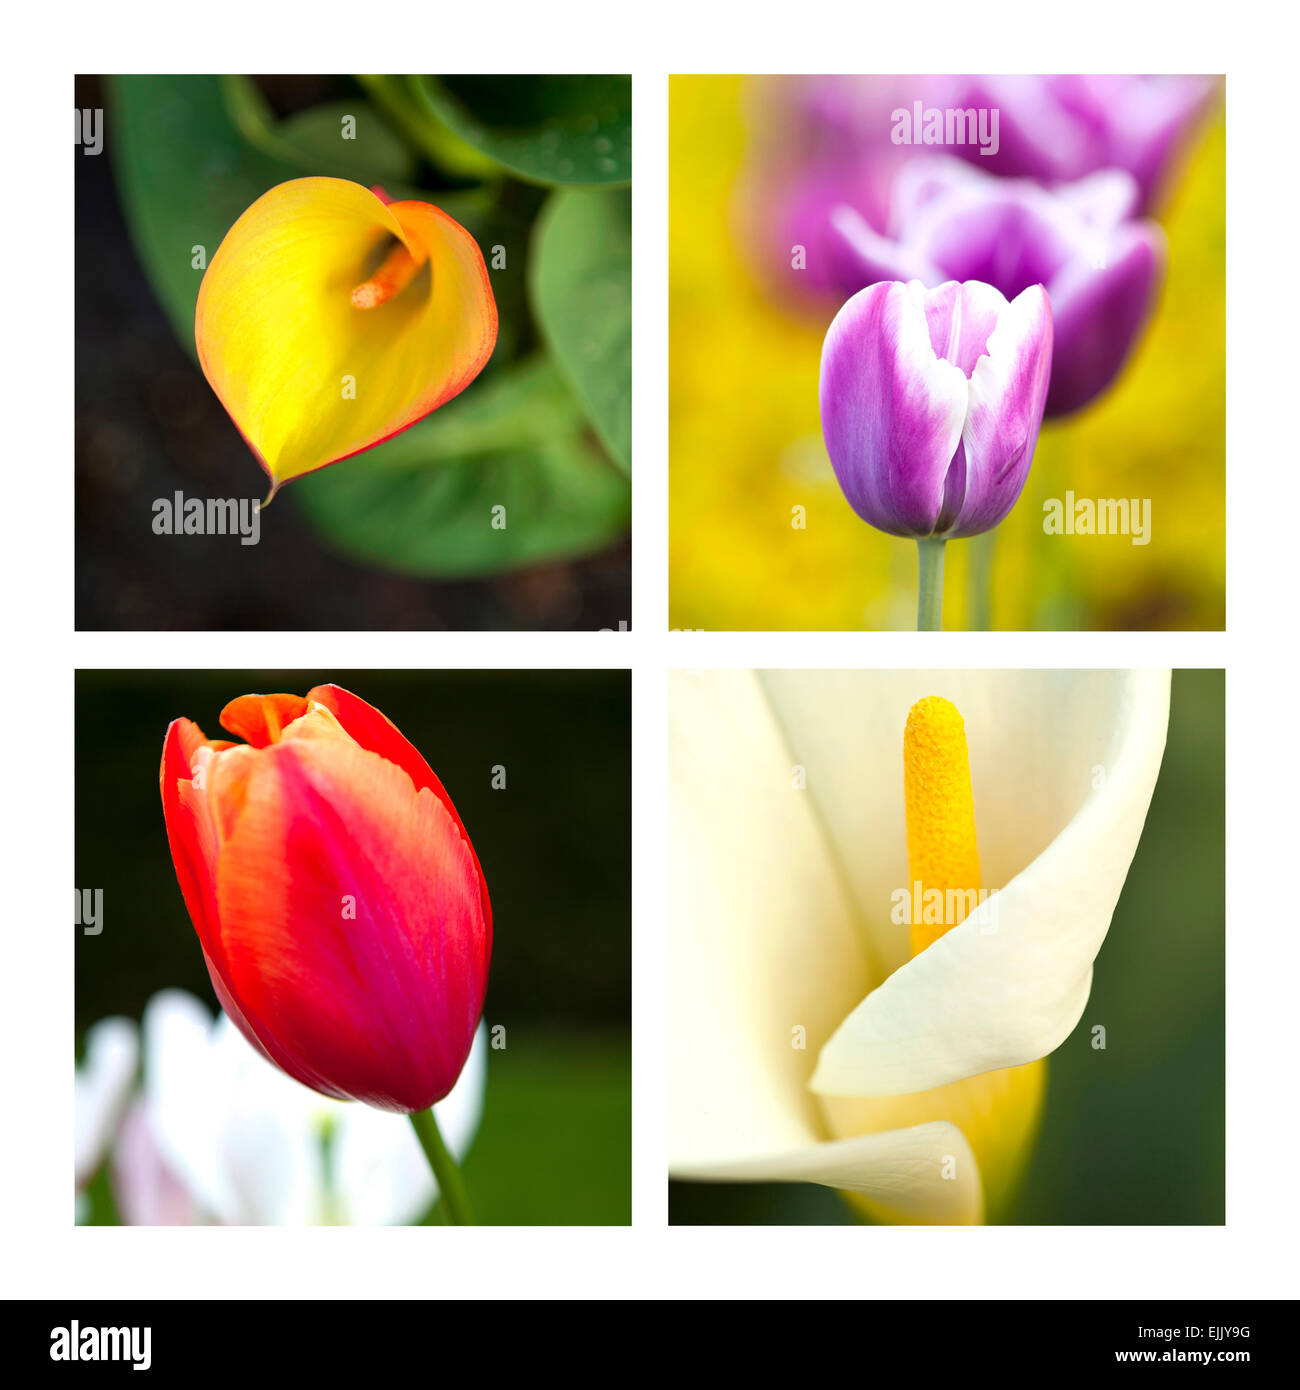 Collage of tulips and arums - Stock Image